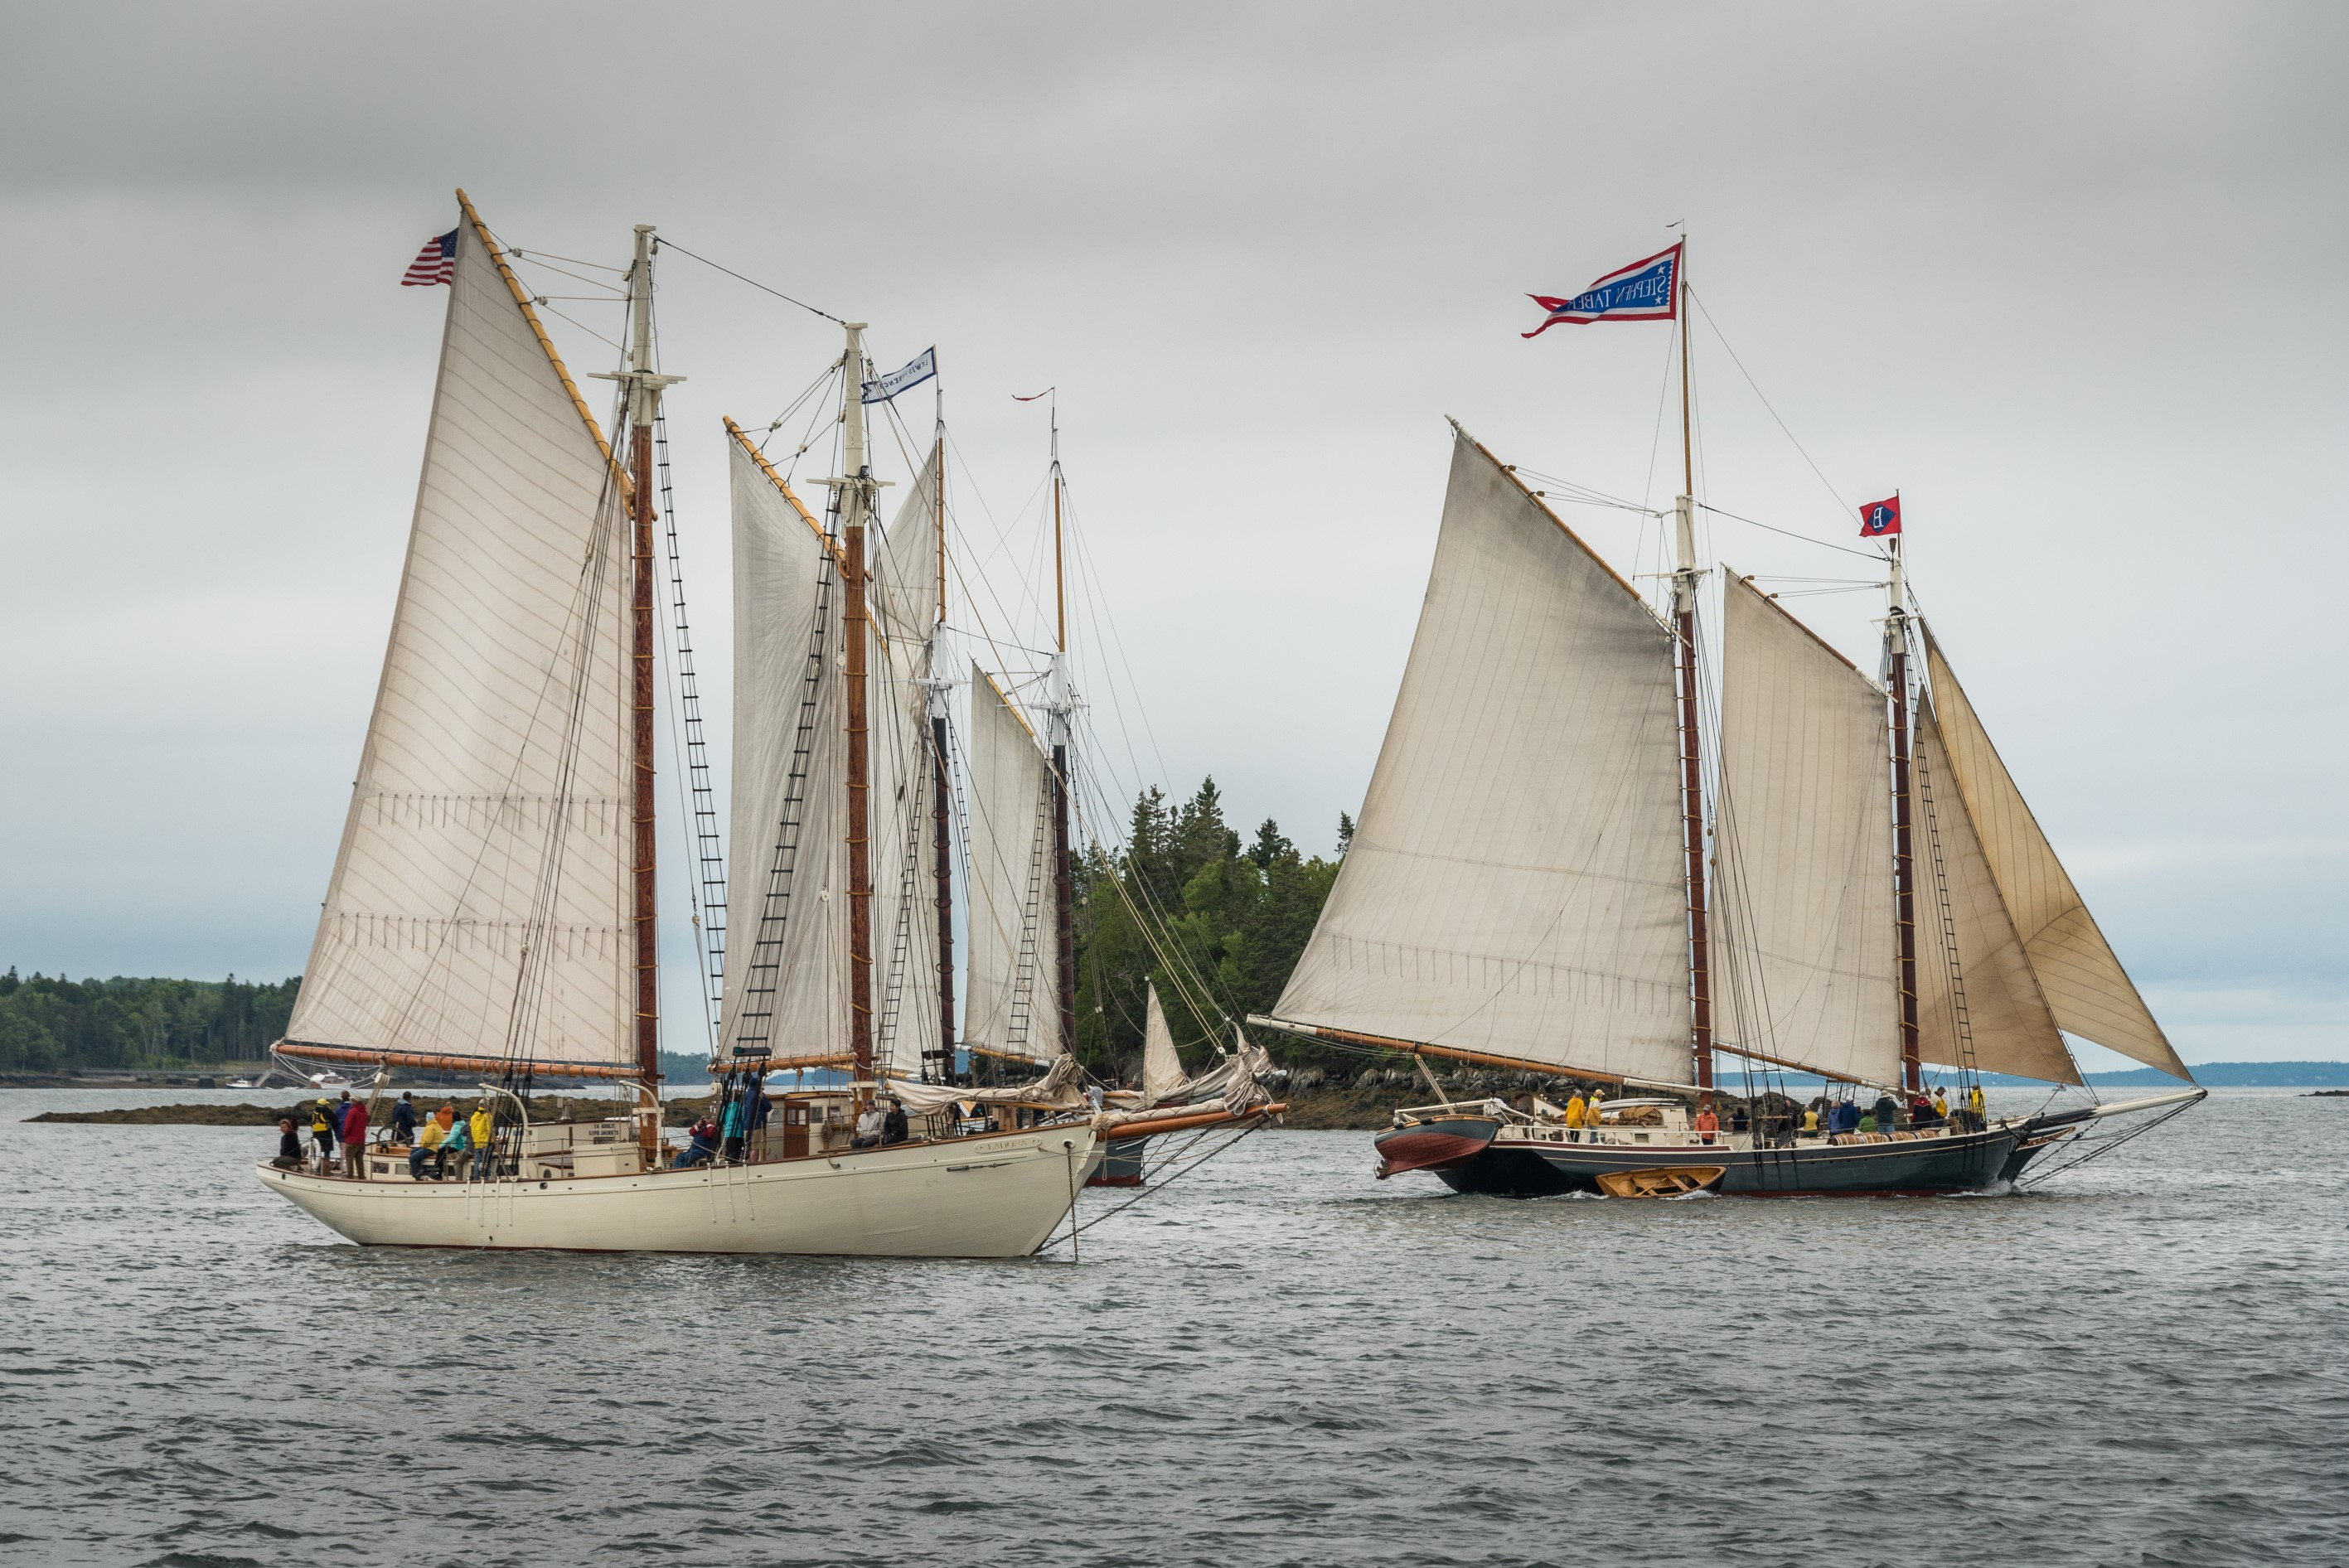 Sailing schooners, sales on ski passes, and safe water anywhere ...